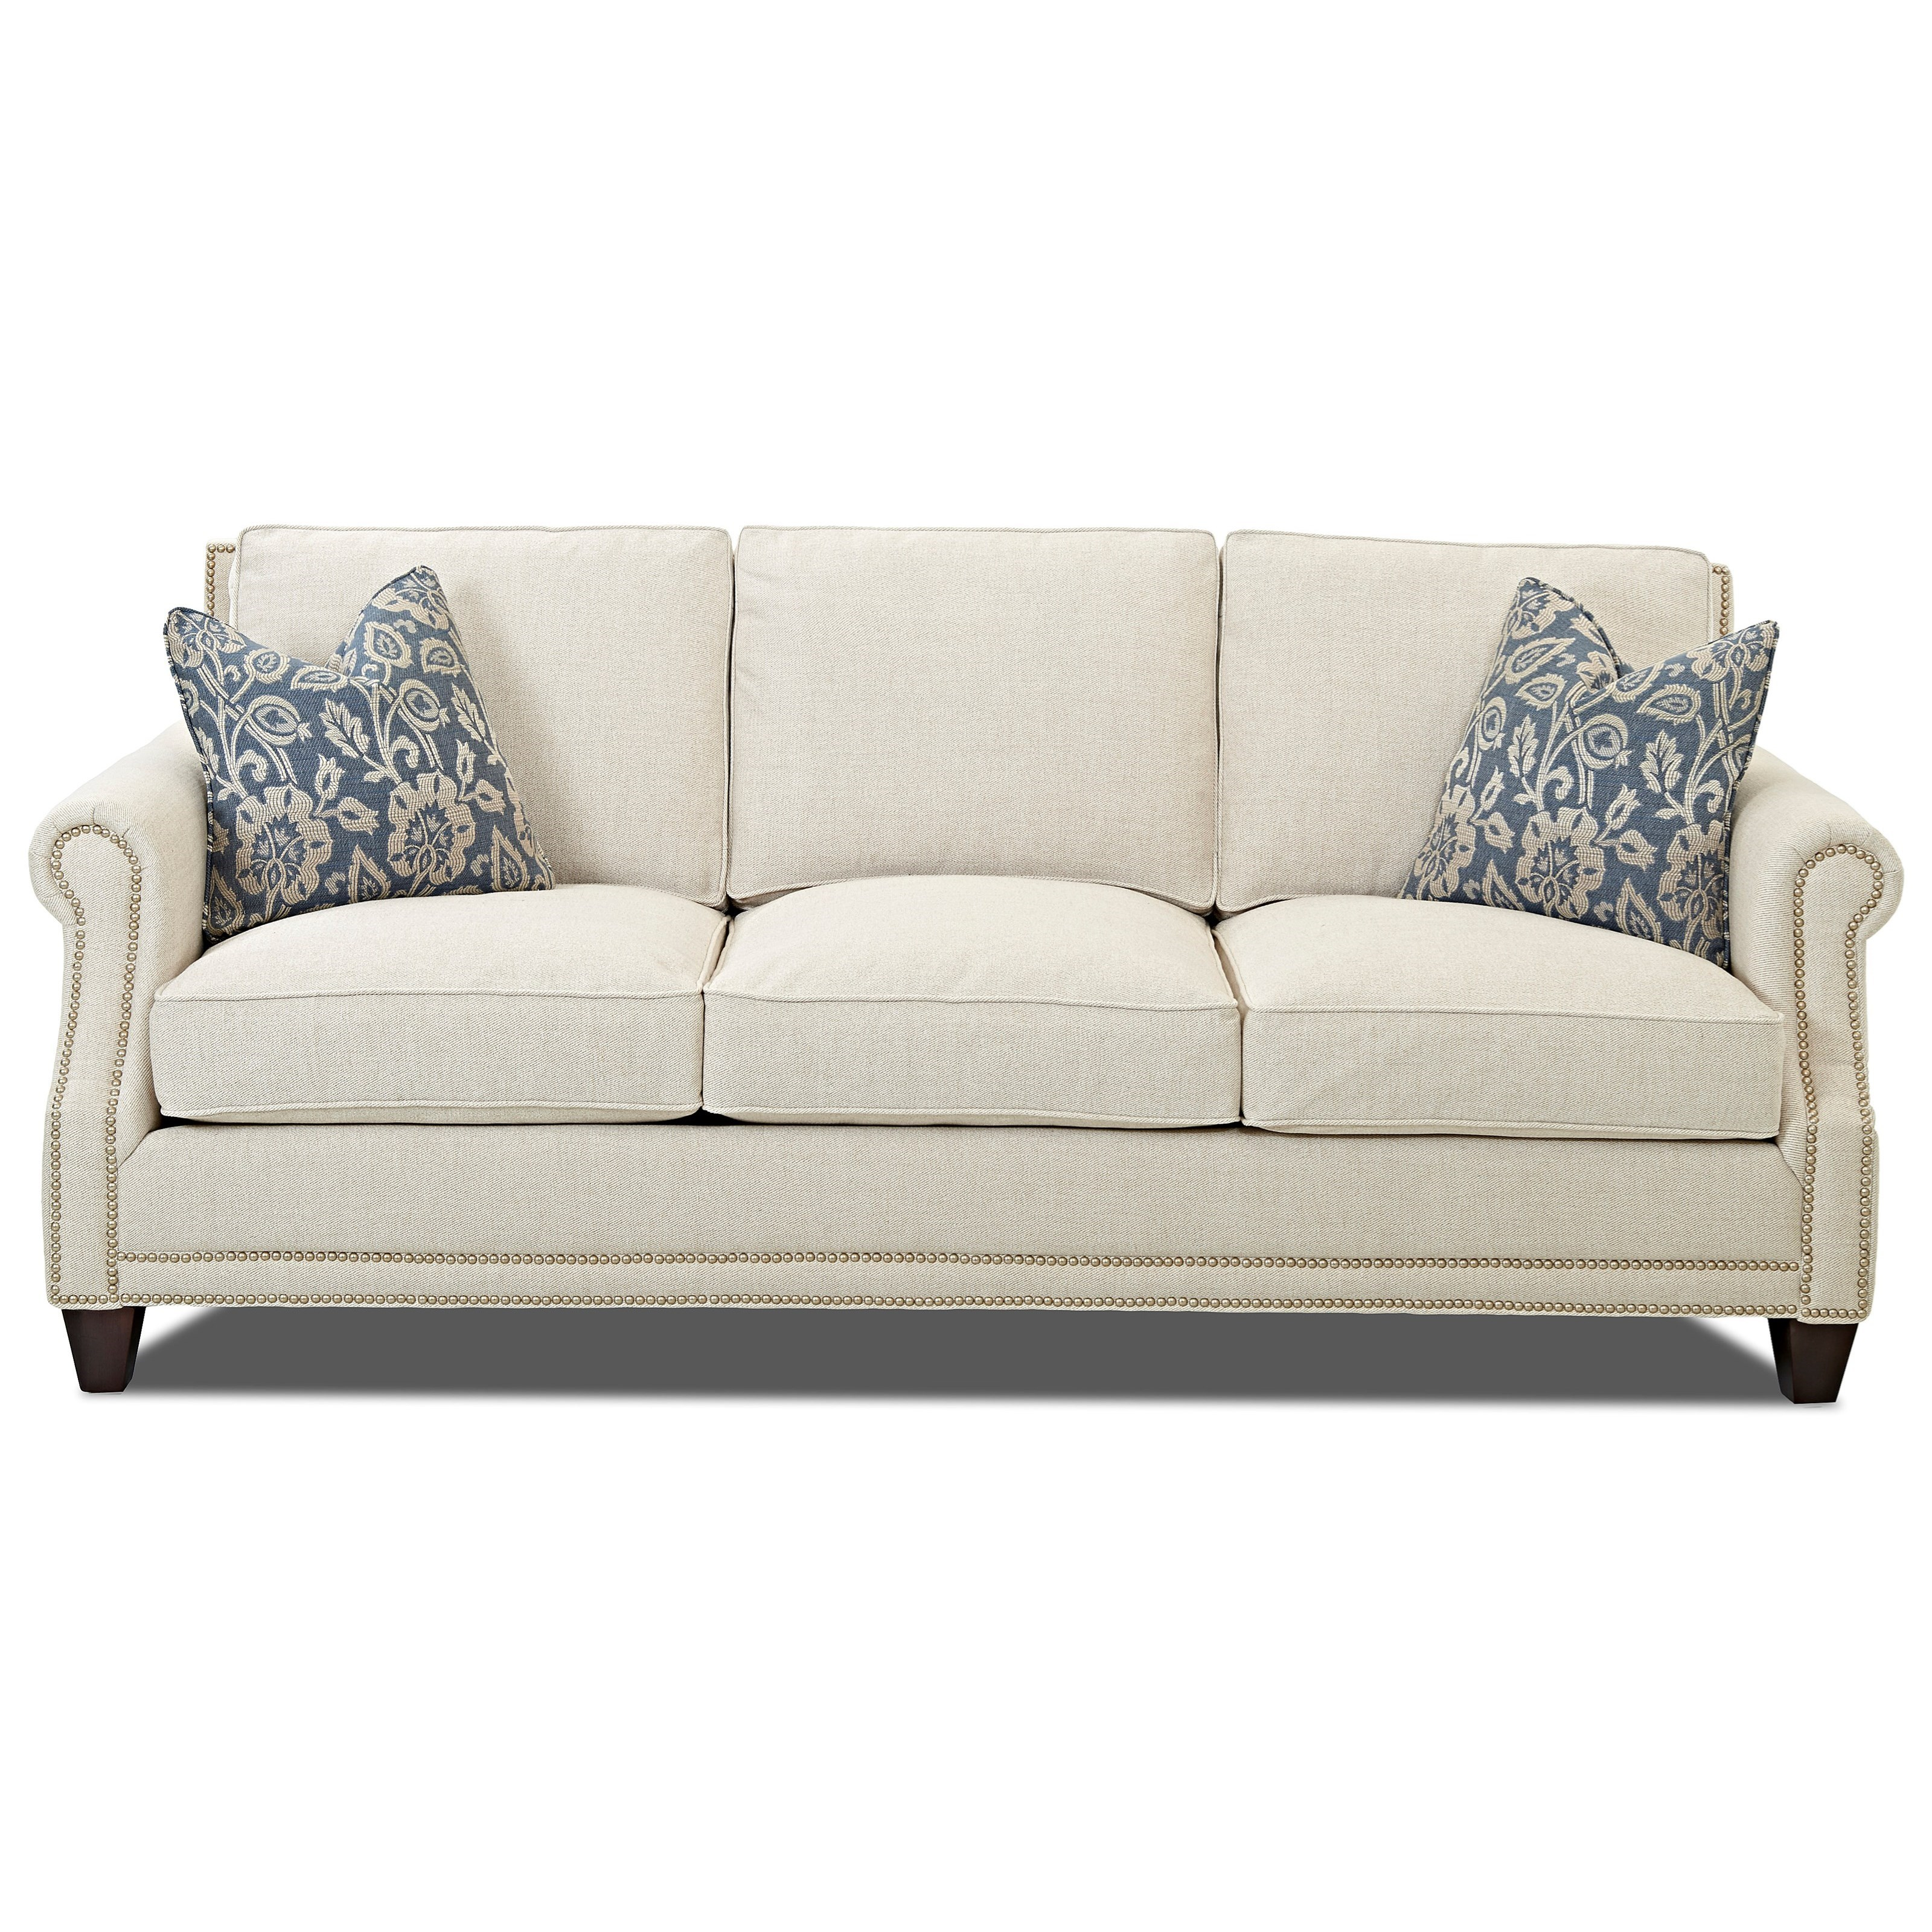 Klaussner York Classically Styled Sofa with Nail Trim and Arm